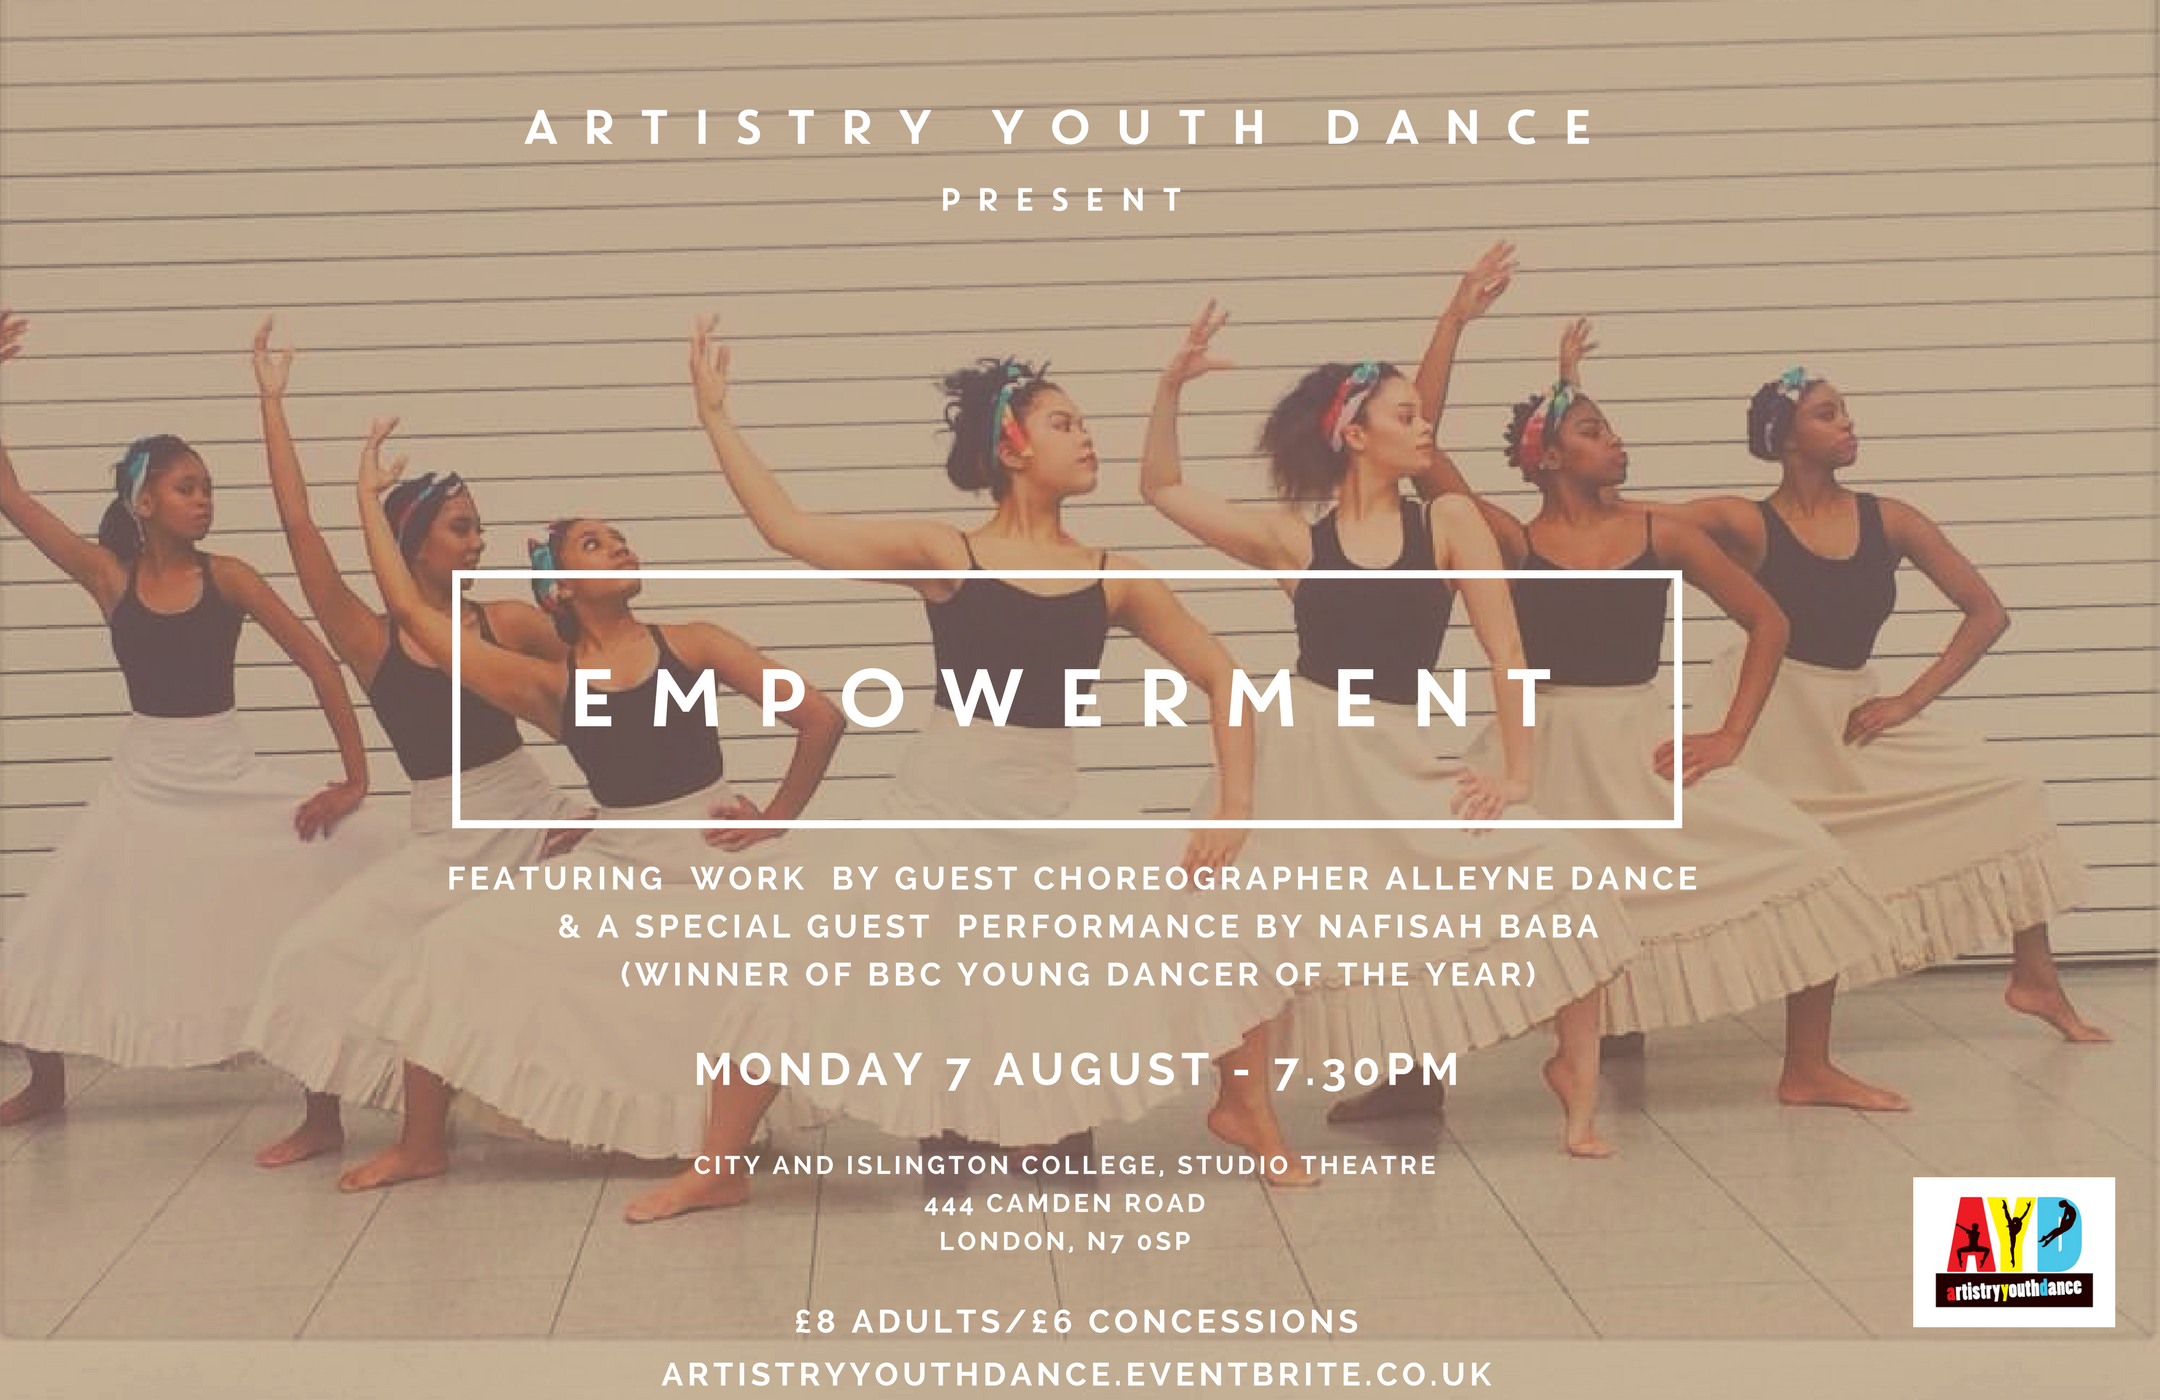 Artistry Youth Dance present 'Empowerment'